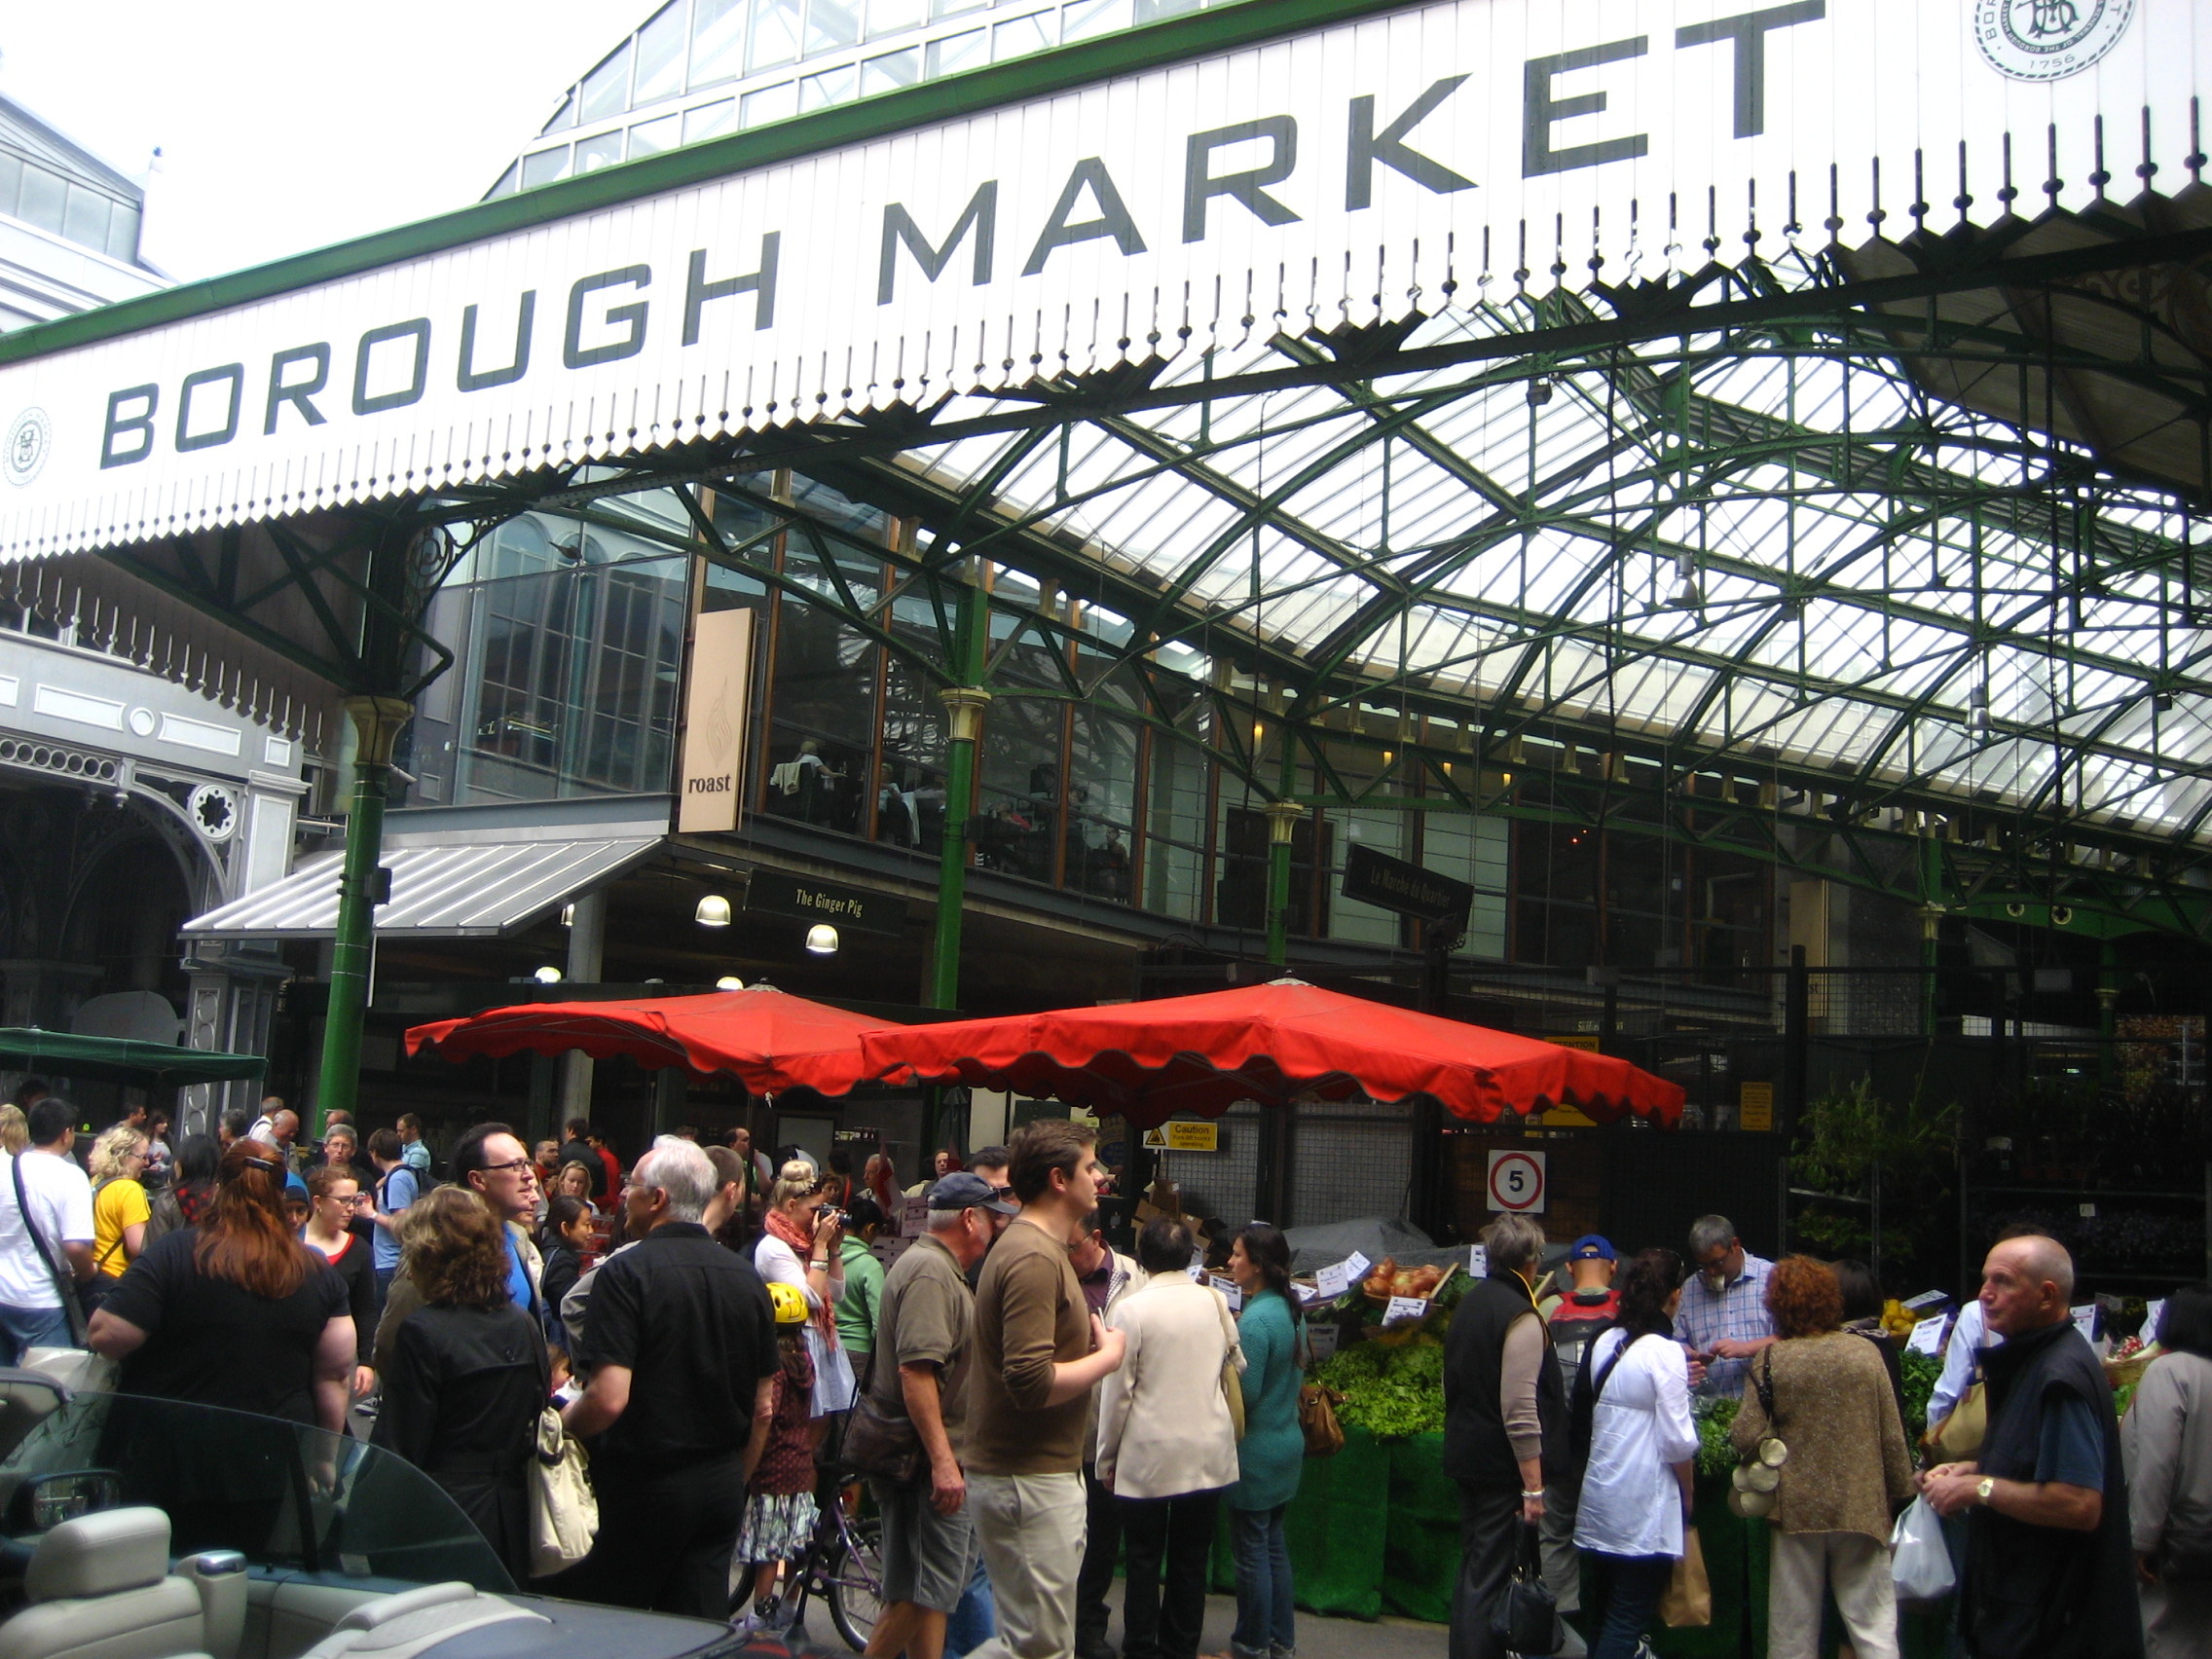 Borough_Market_(4701274756).jpg